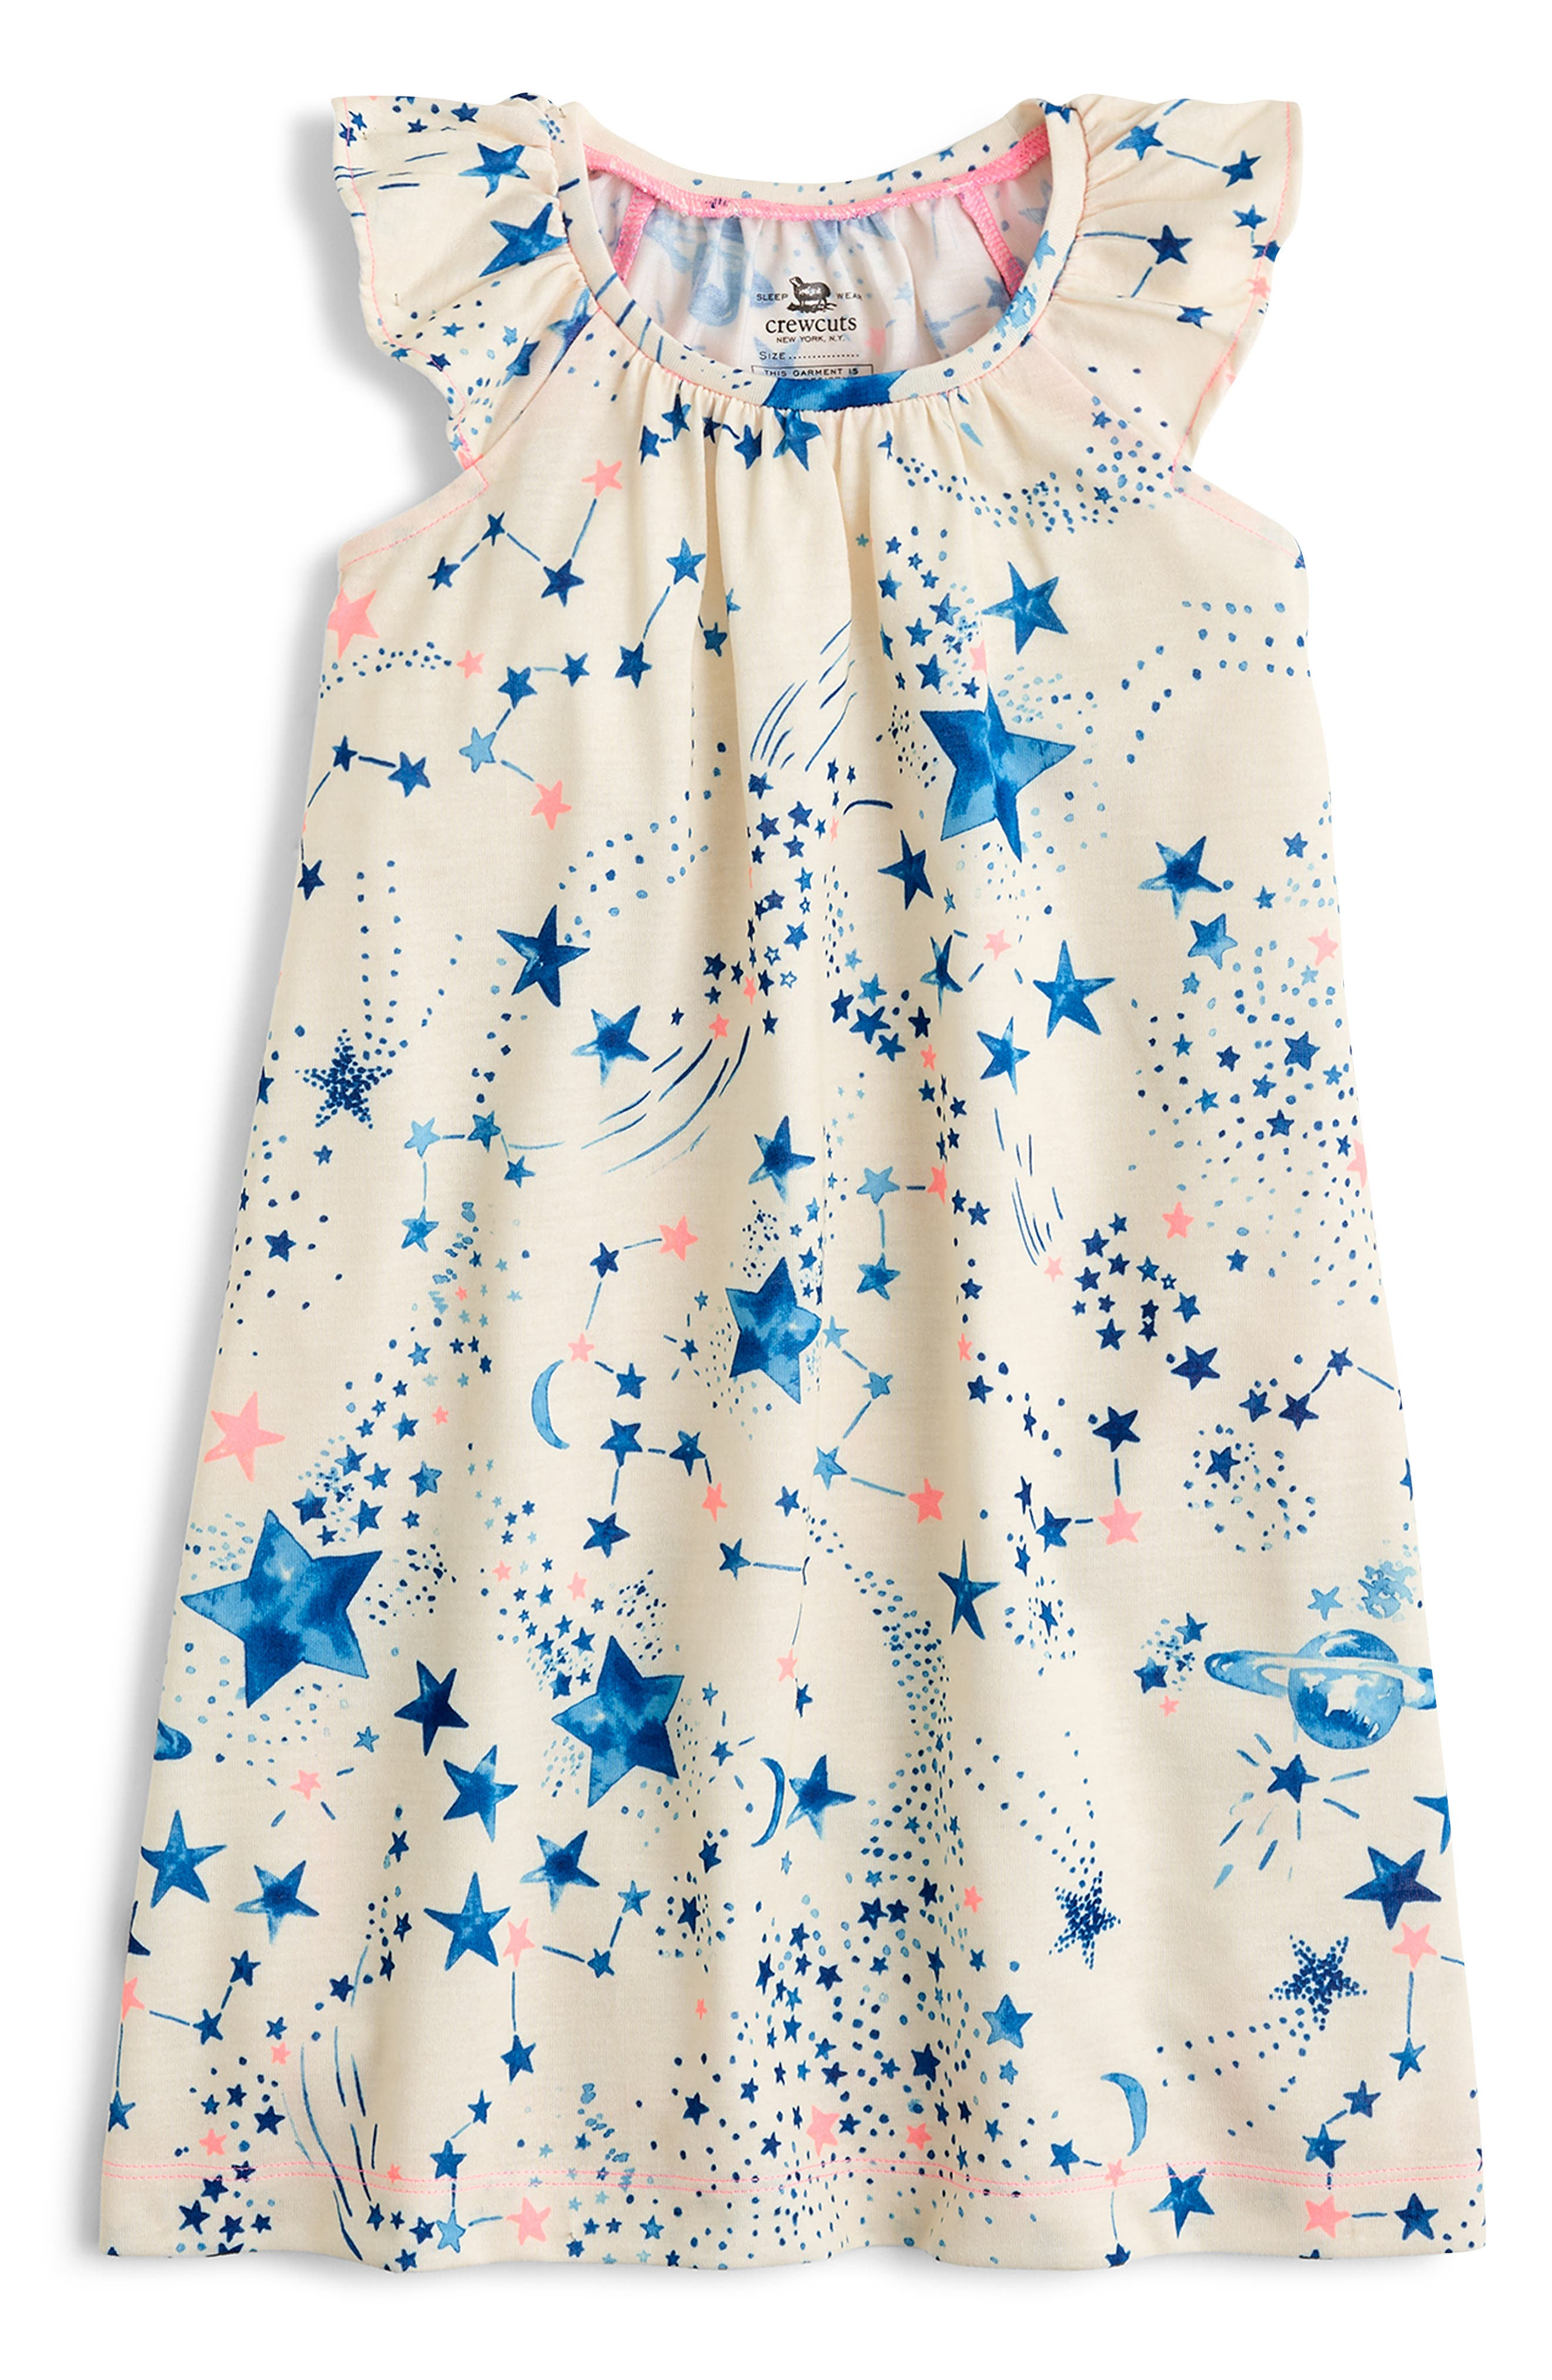 CREWCUTS BY J.CREW Constellations Flutter Sleeve Nightgown, Main, color, IVORY BLUE